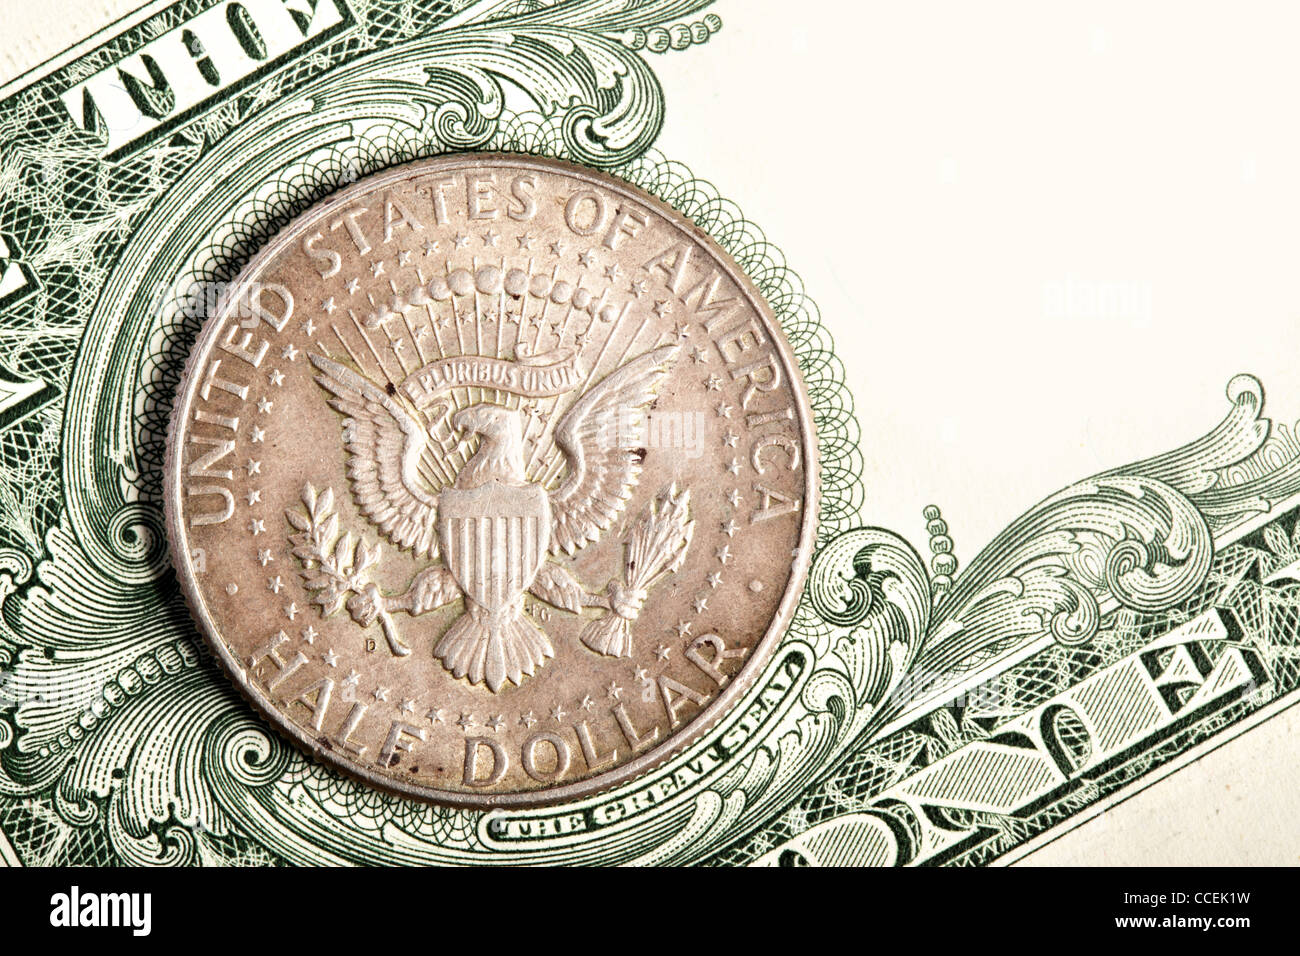 Half dollar coin close up on banknote - Stock Image